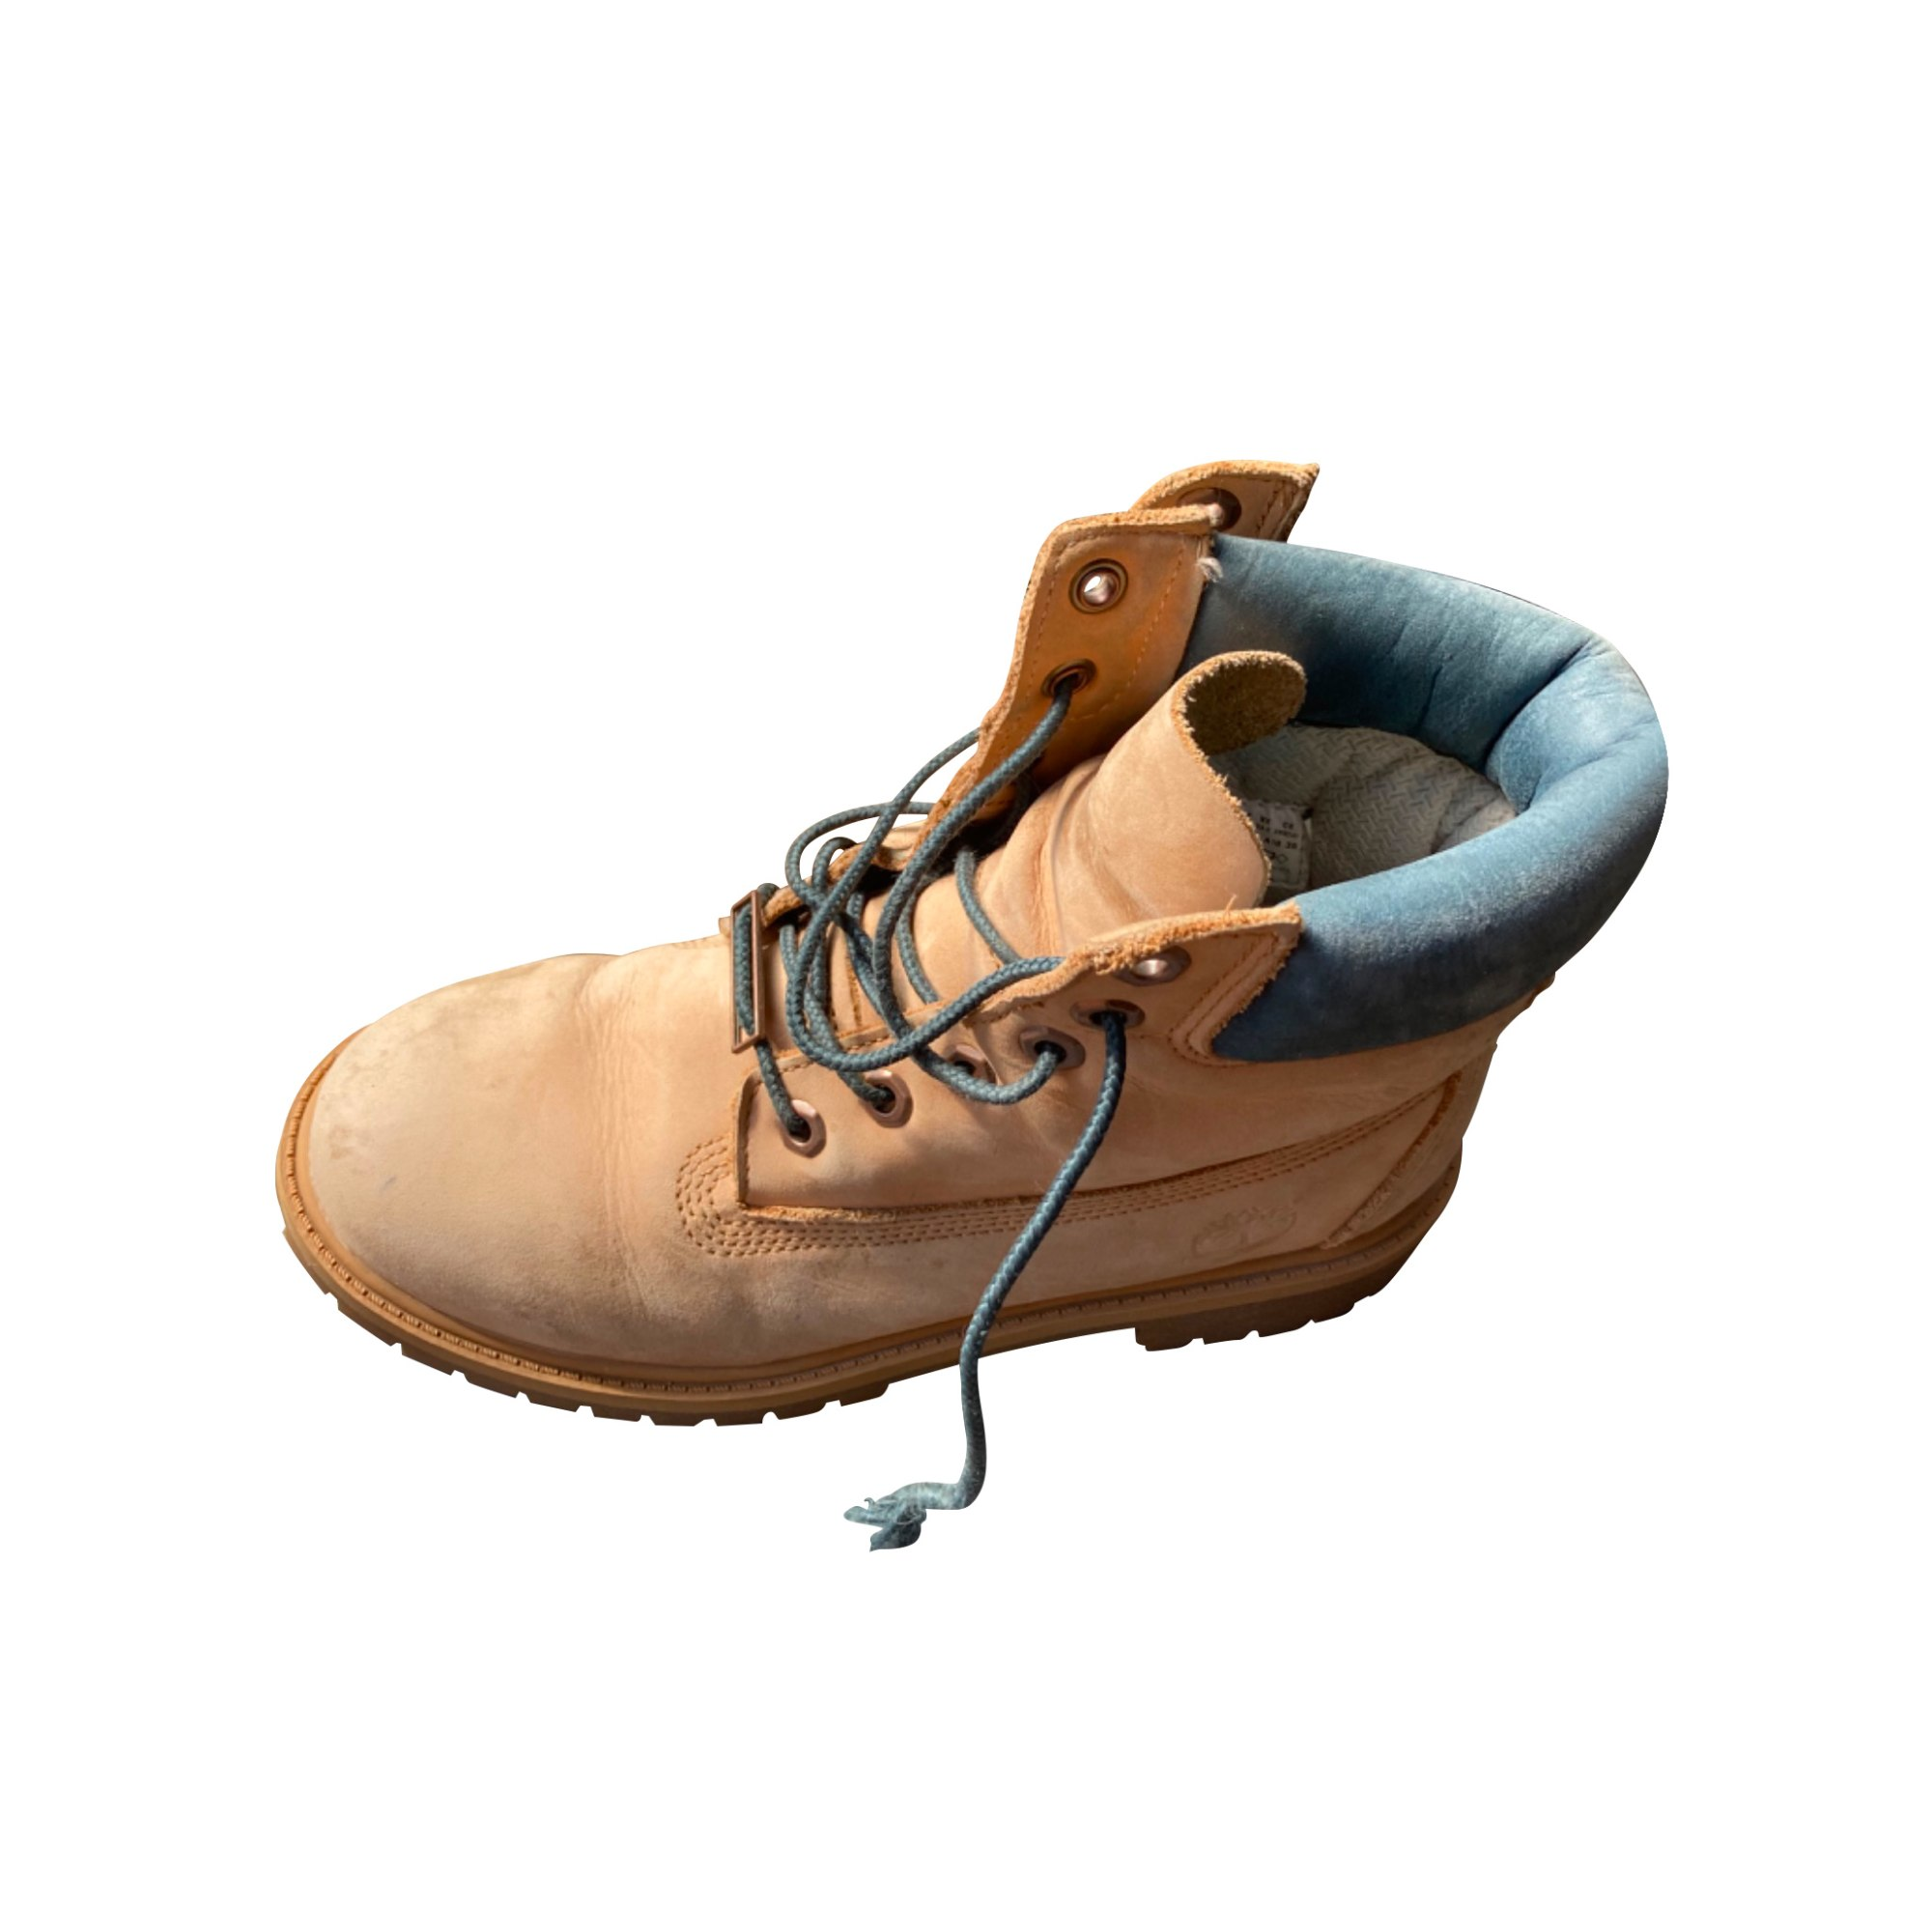 Ankle Boots TIMBERLAND Beige, camel